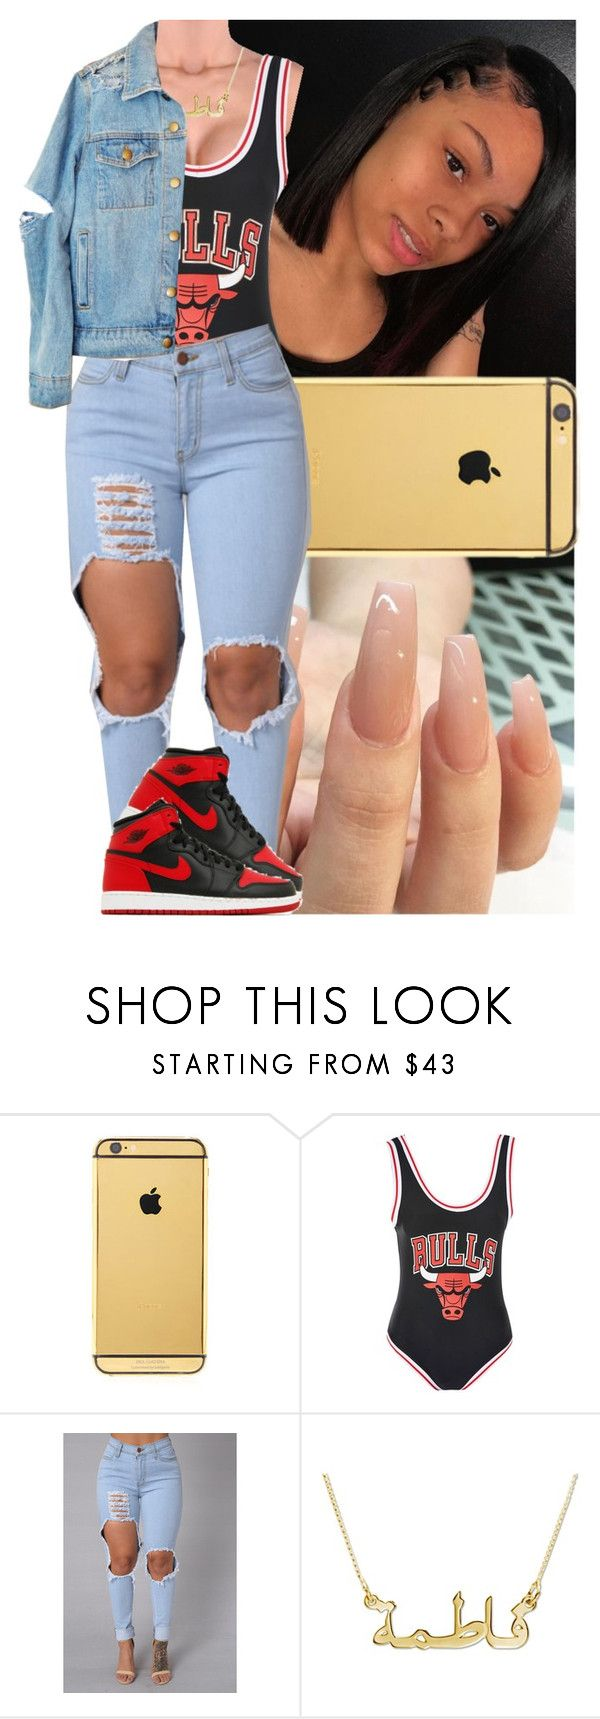 """Untitled #1584"" by msixo ❤ liked on Polyvore featuring Goldgenie, Topshop and NIKE"